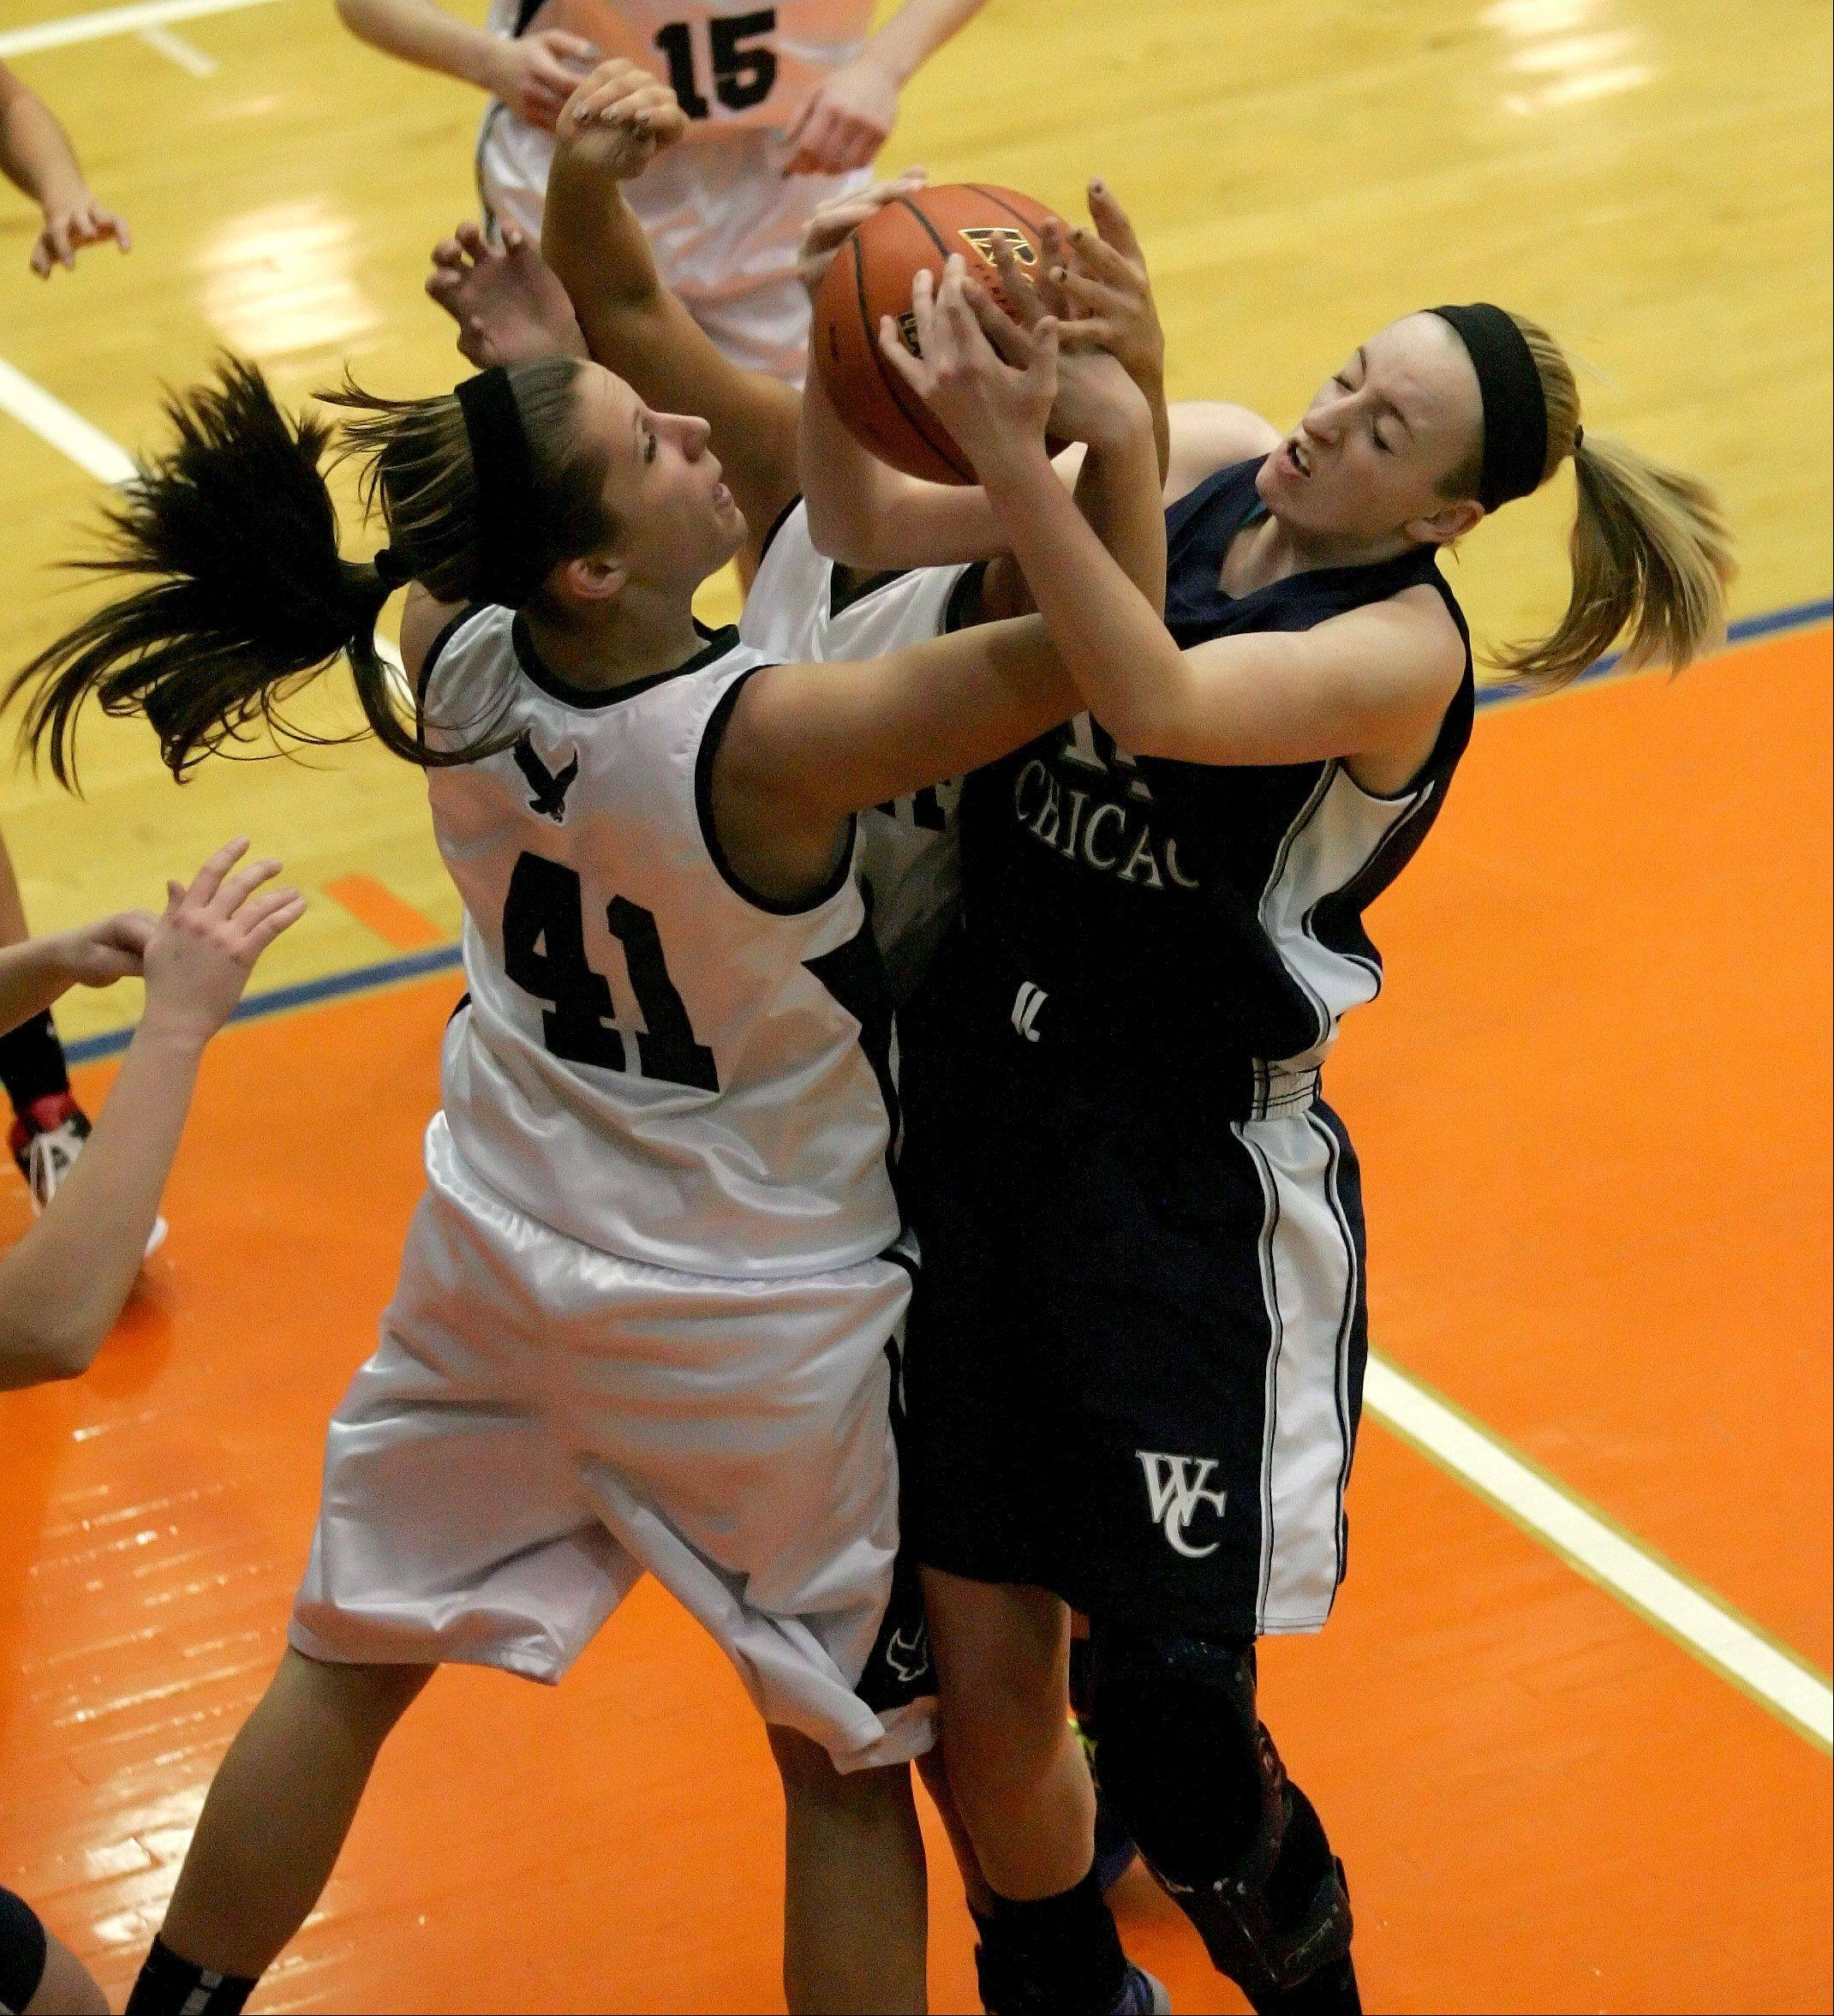 Lisa Palmer of Bartlett, left, and Brenna MacDonald of West Chicago, right, go after a rebound in Class 4A sectional semifinal girls basketball action at Hoffman Estates on Monday.